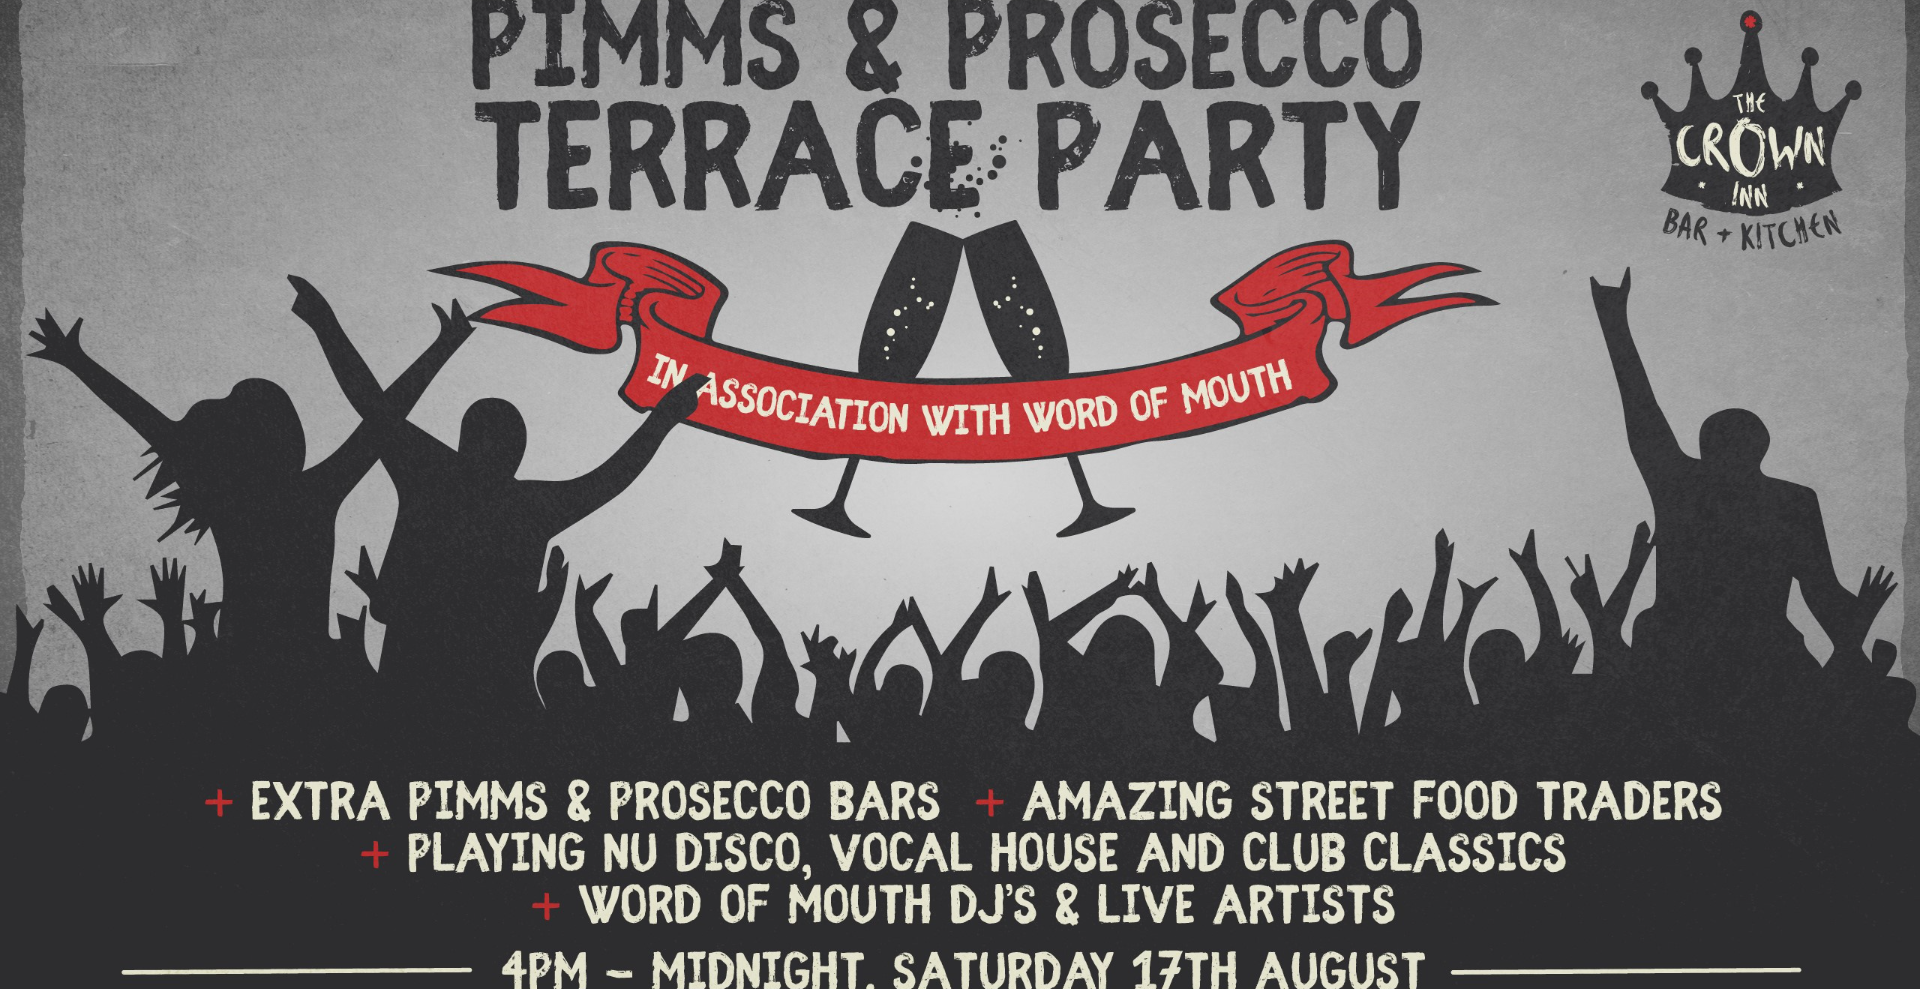 PIMMS & PROSECCO TERRACE PARTY In association with Word of Mouth